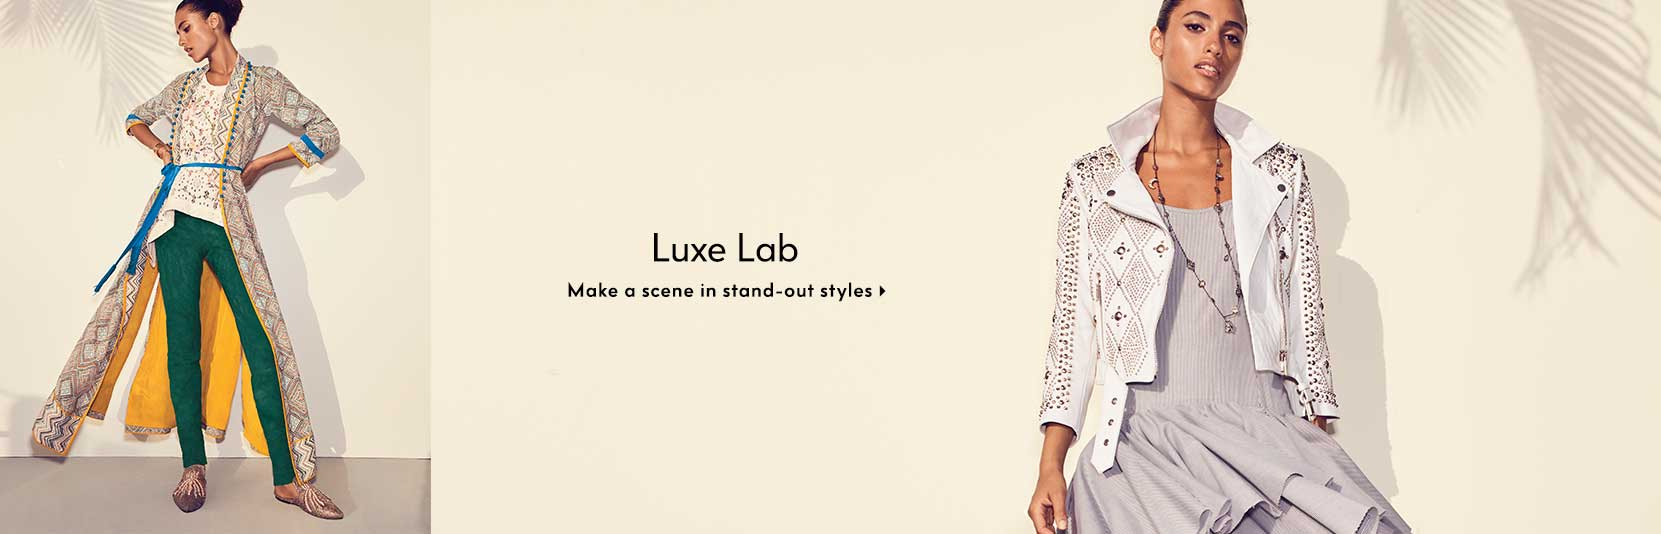 Luxe Lab - Make a scene in stand-out styles